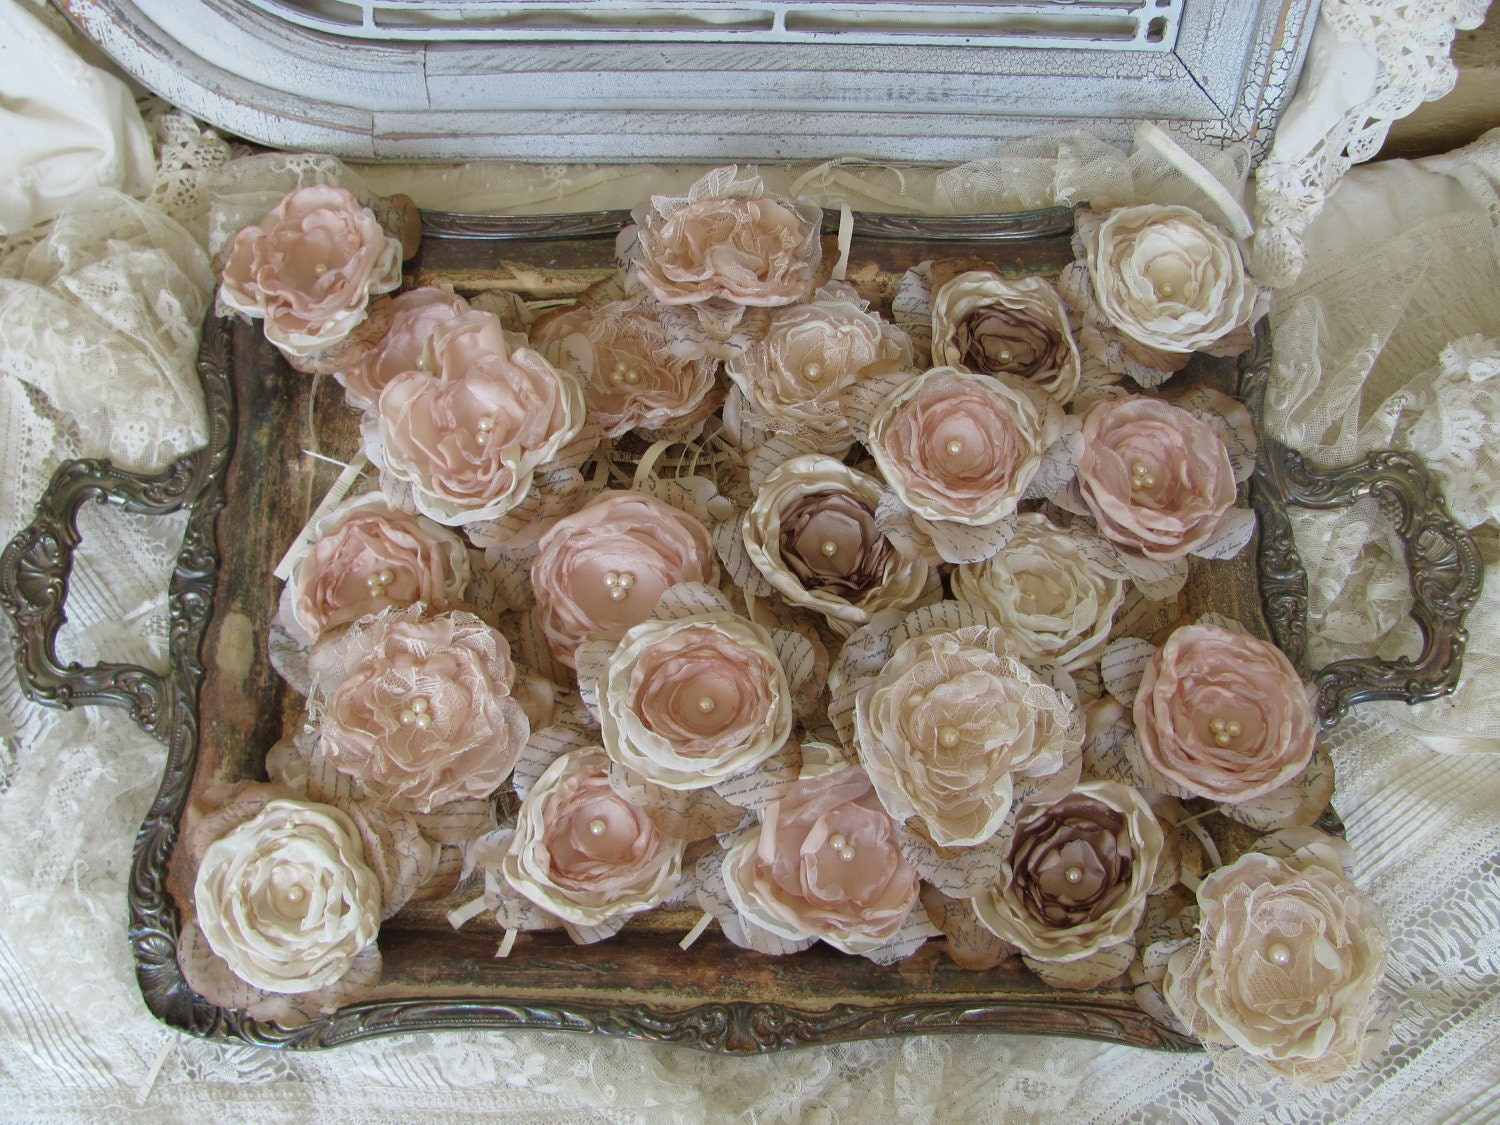 DIY Fabric FlowersWedding Flowers For Decorations Or DIY